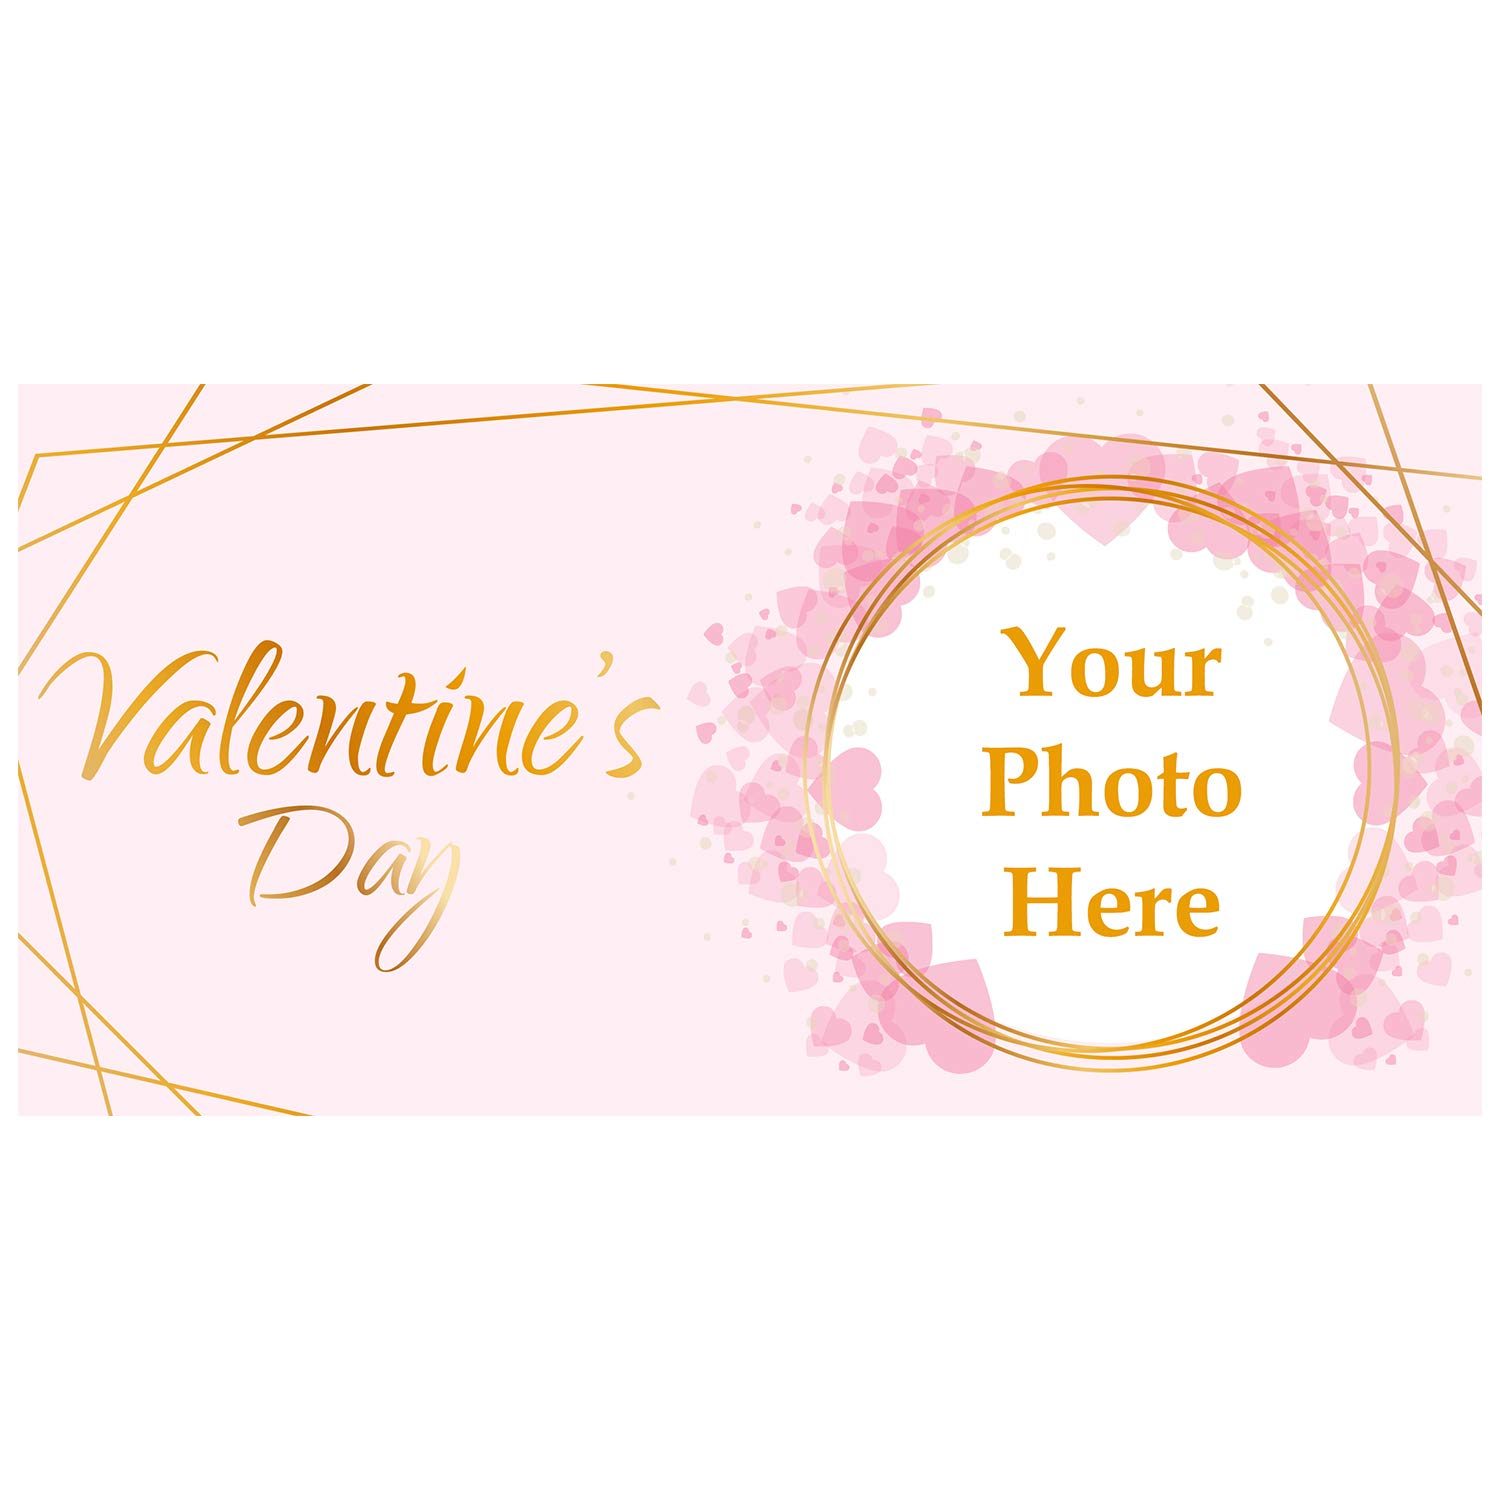 BANNER BUZZ MAKE IT VISIBLE Valentine's Day Custom Magnetic Picture Pocket Frame, Self-Adhesive Pocket Photo Magnets for Refrigerator, Valentine Day Gifts & More (12'' X 24'')